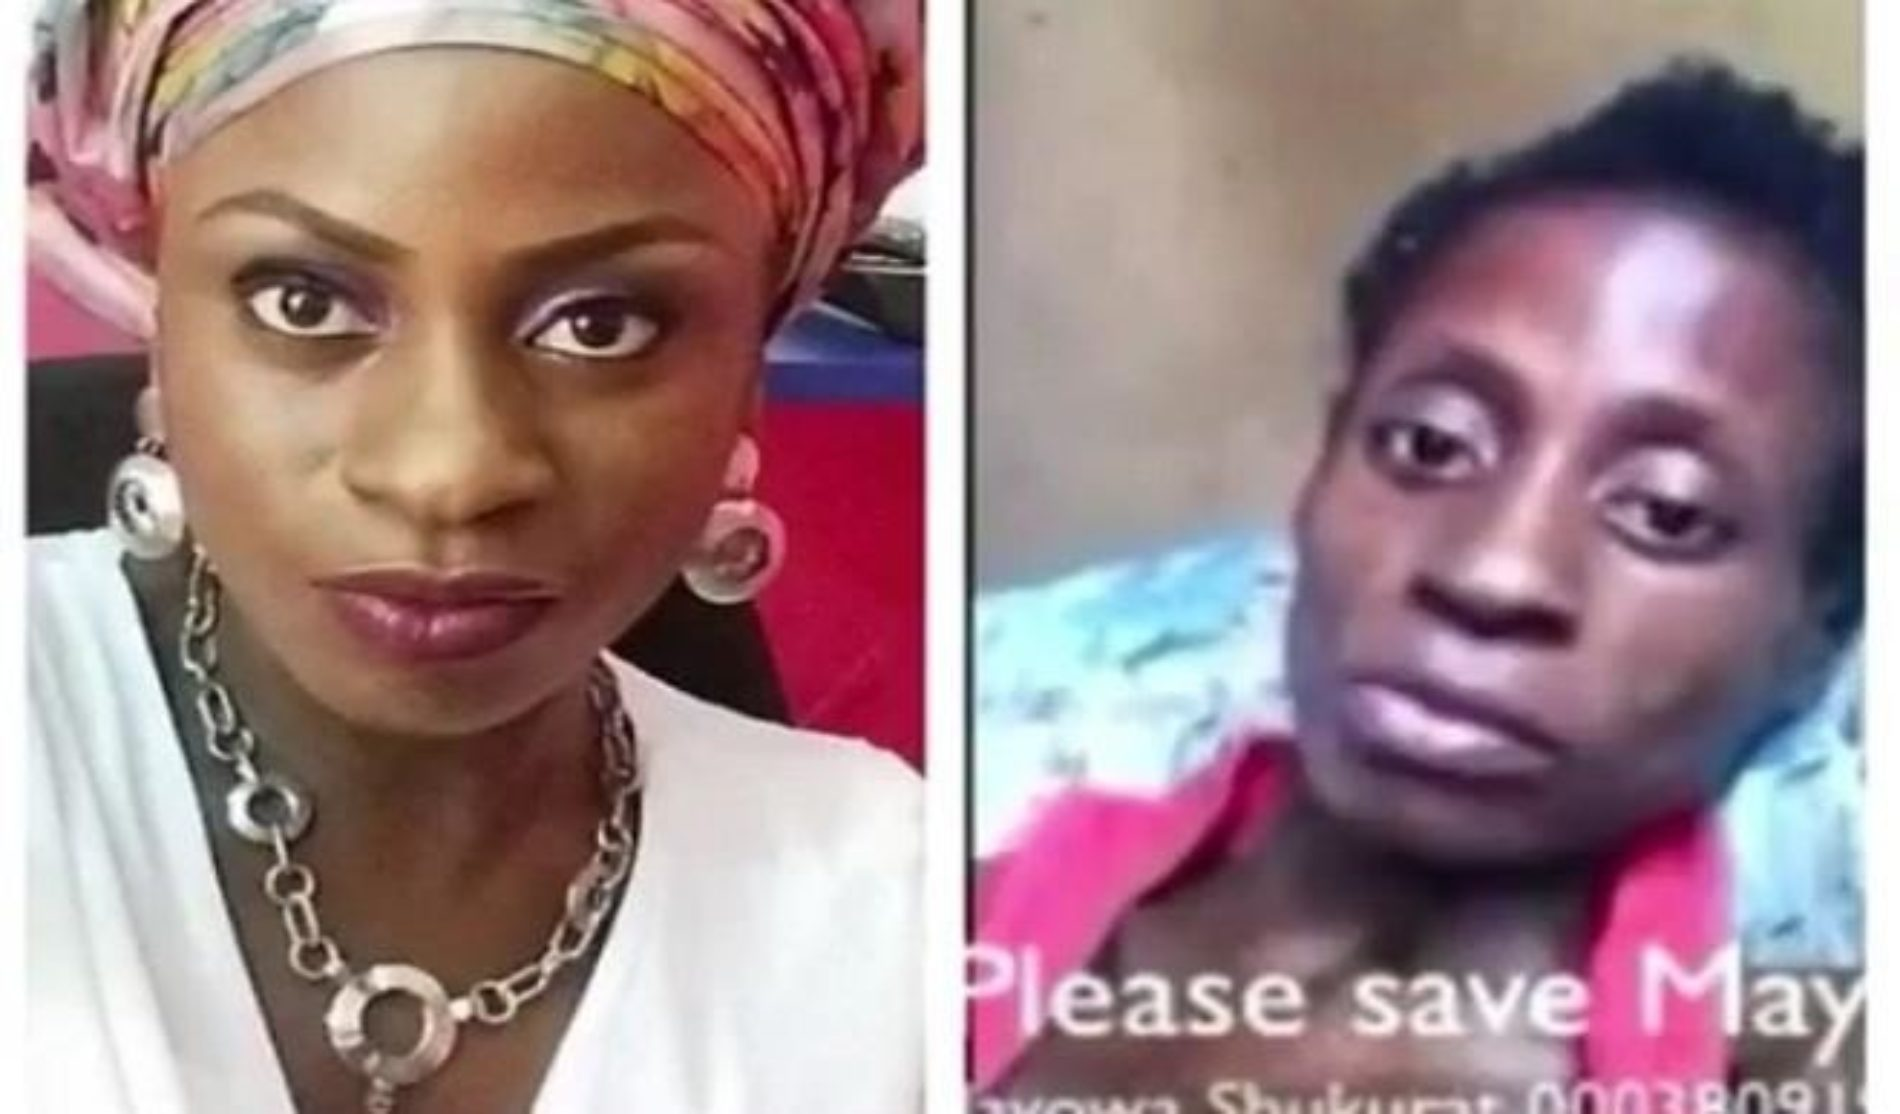 #SaveMayowa is reportedly a scam. She was sick but beyond treatment, and her family stole money from Nigerians